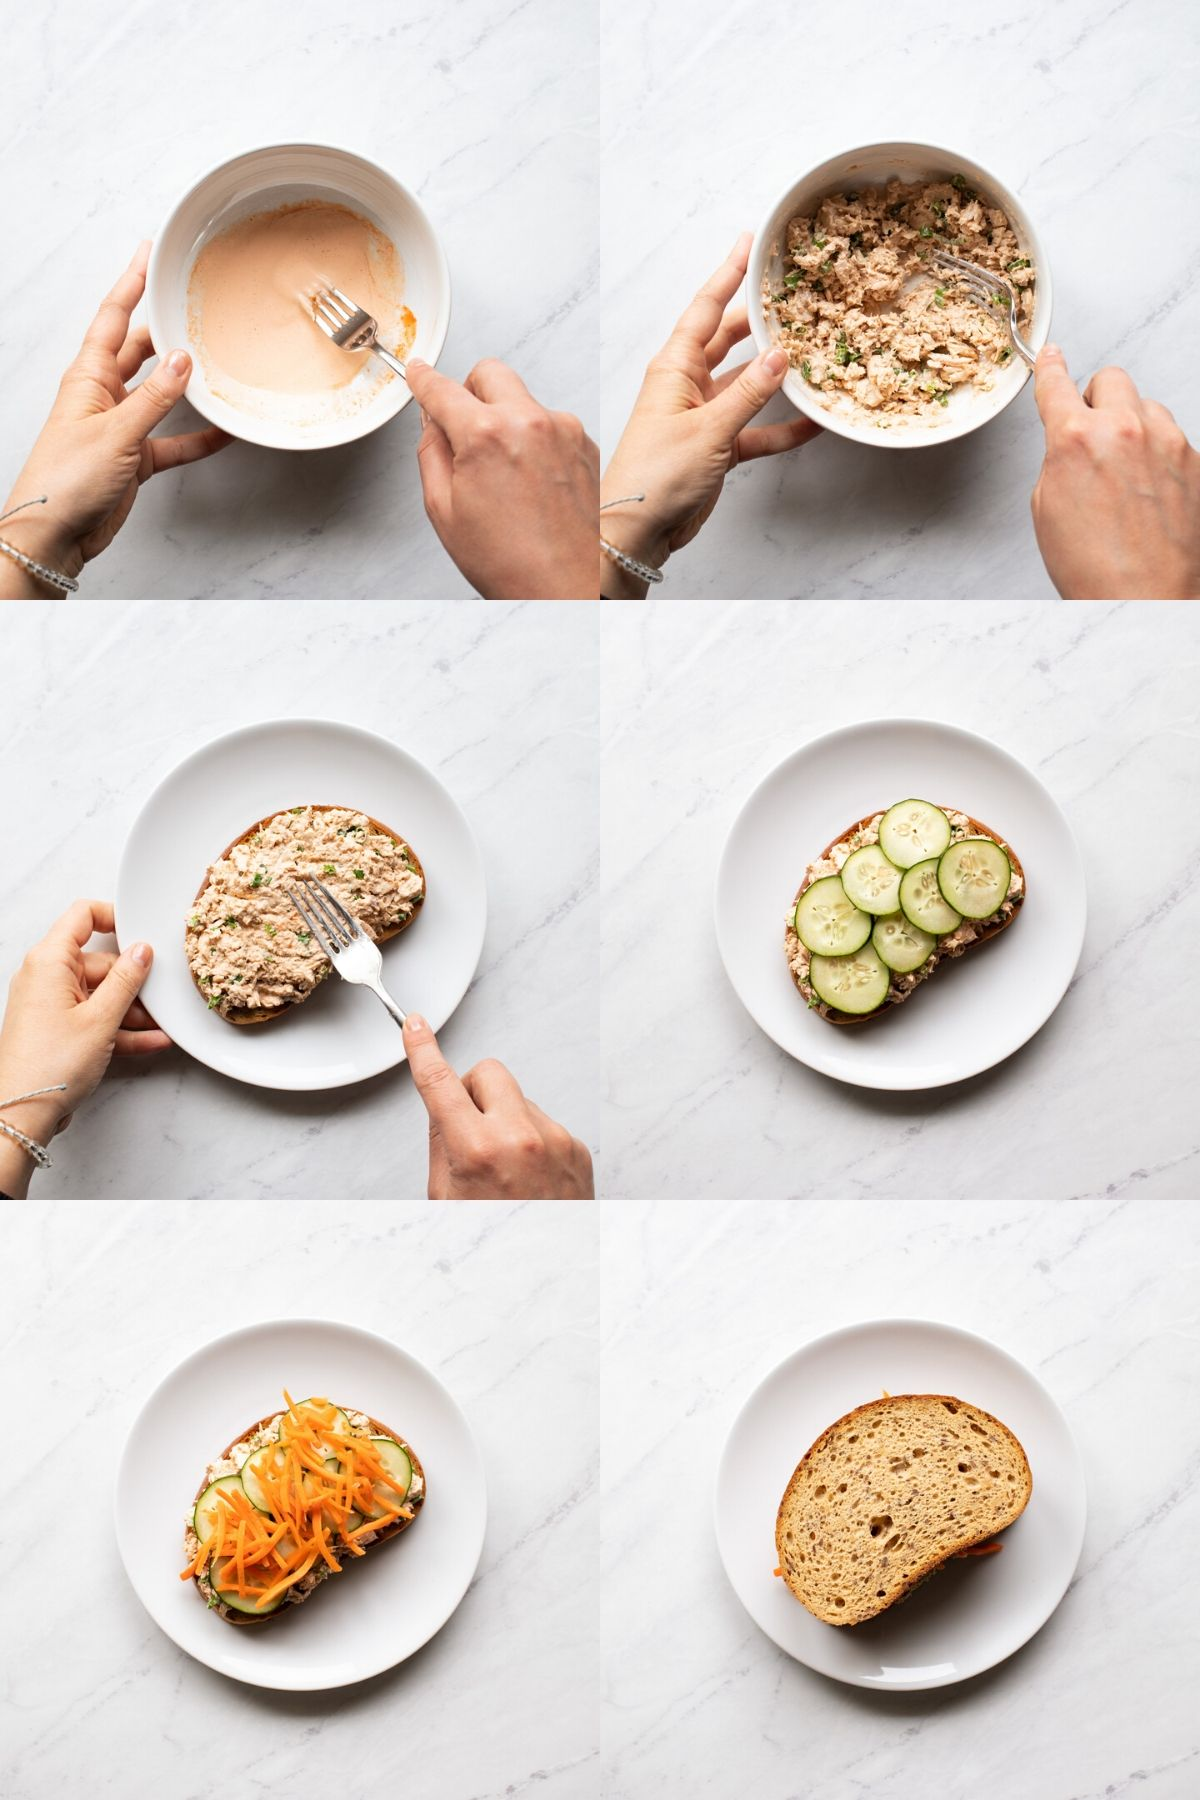 Six step-by-step images arranged into one image showing the process of making low FODMAP spicy salmon sandwiches. First, mayo, sriracha, and lime juice are whisked together with a fork in a small white bowl. Second, the canned salmon and green onion tops (low FODMAP part) are added and mixed into the sauce. Third, the salmon mixture is spread onto a slice of low FODMAP bread. Fourth, the salmon salad is topped with 7 thin cucumber slices. Fifth, carrot matchsticks are arranged on top of the cucumbers slices. Sixth, the sandwich is finished with one more slices of low FODMAP bread.